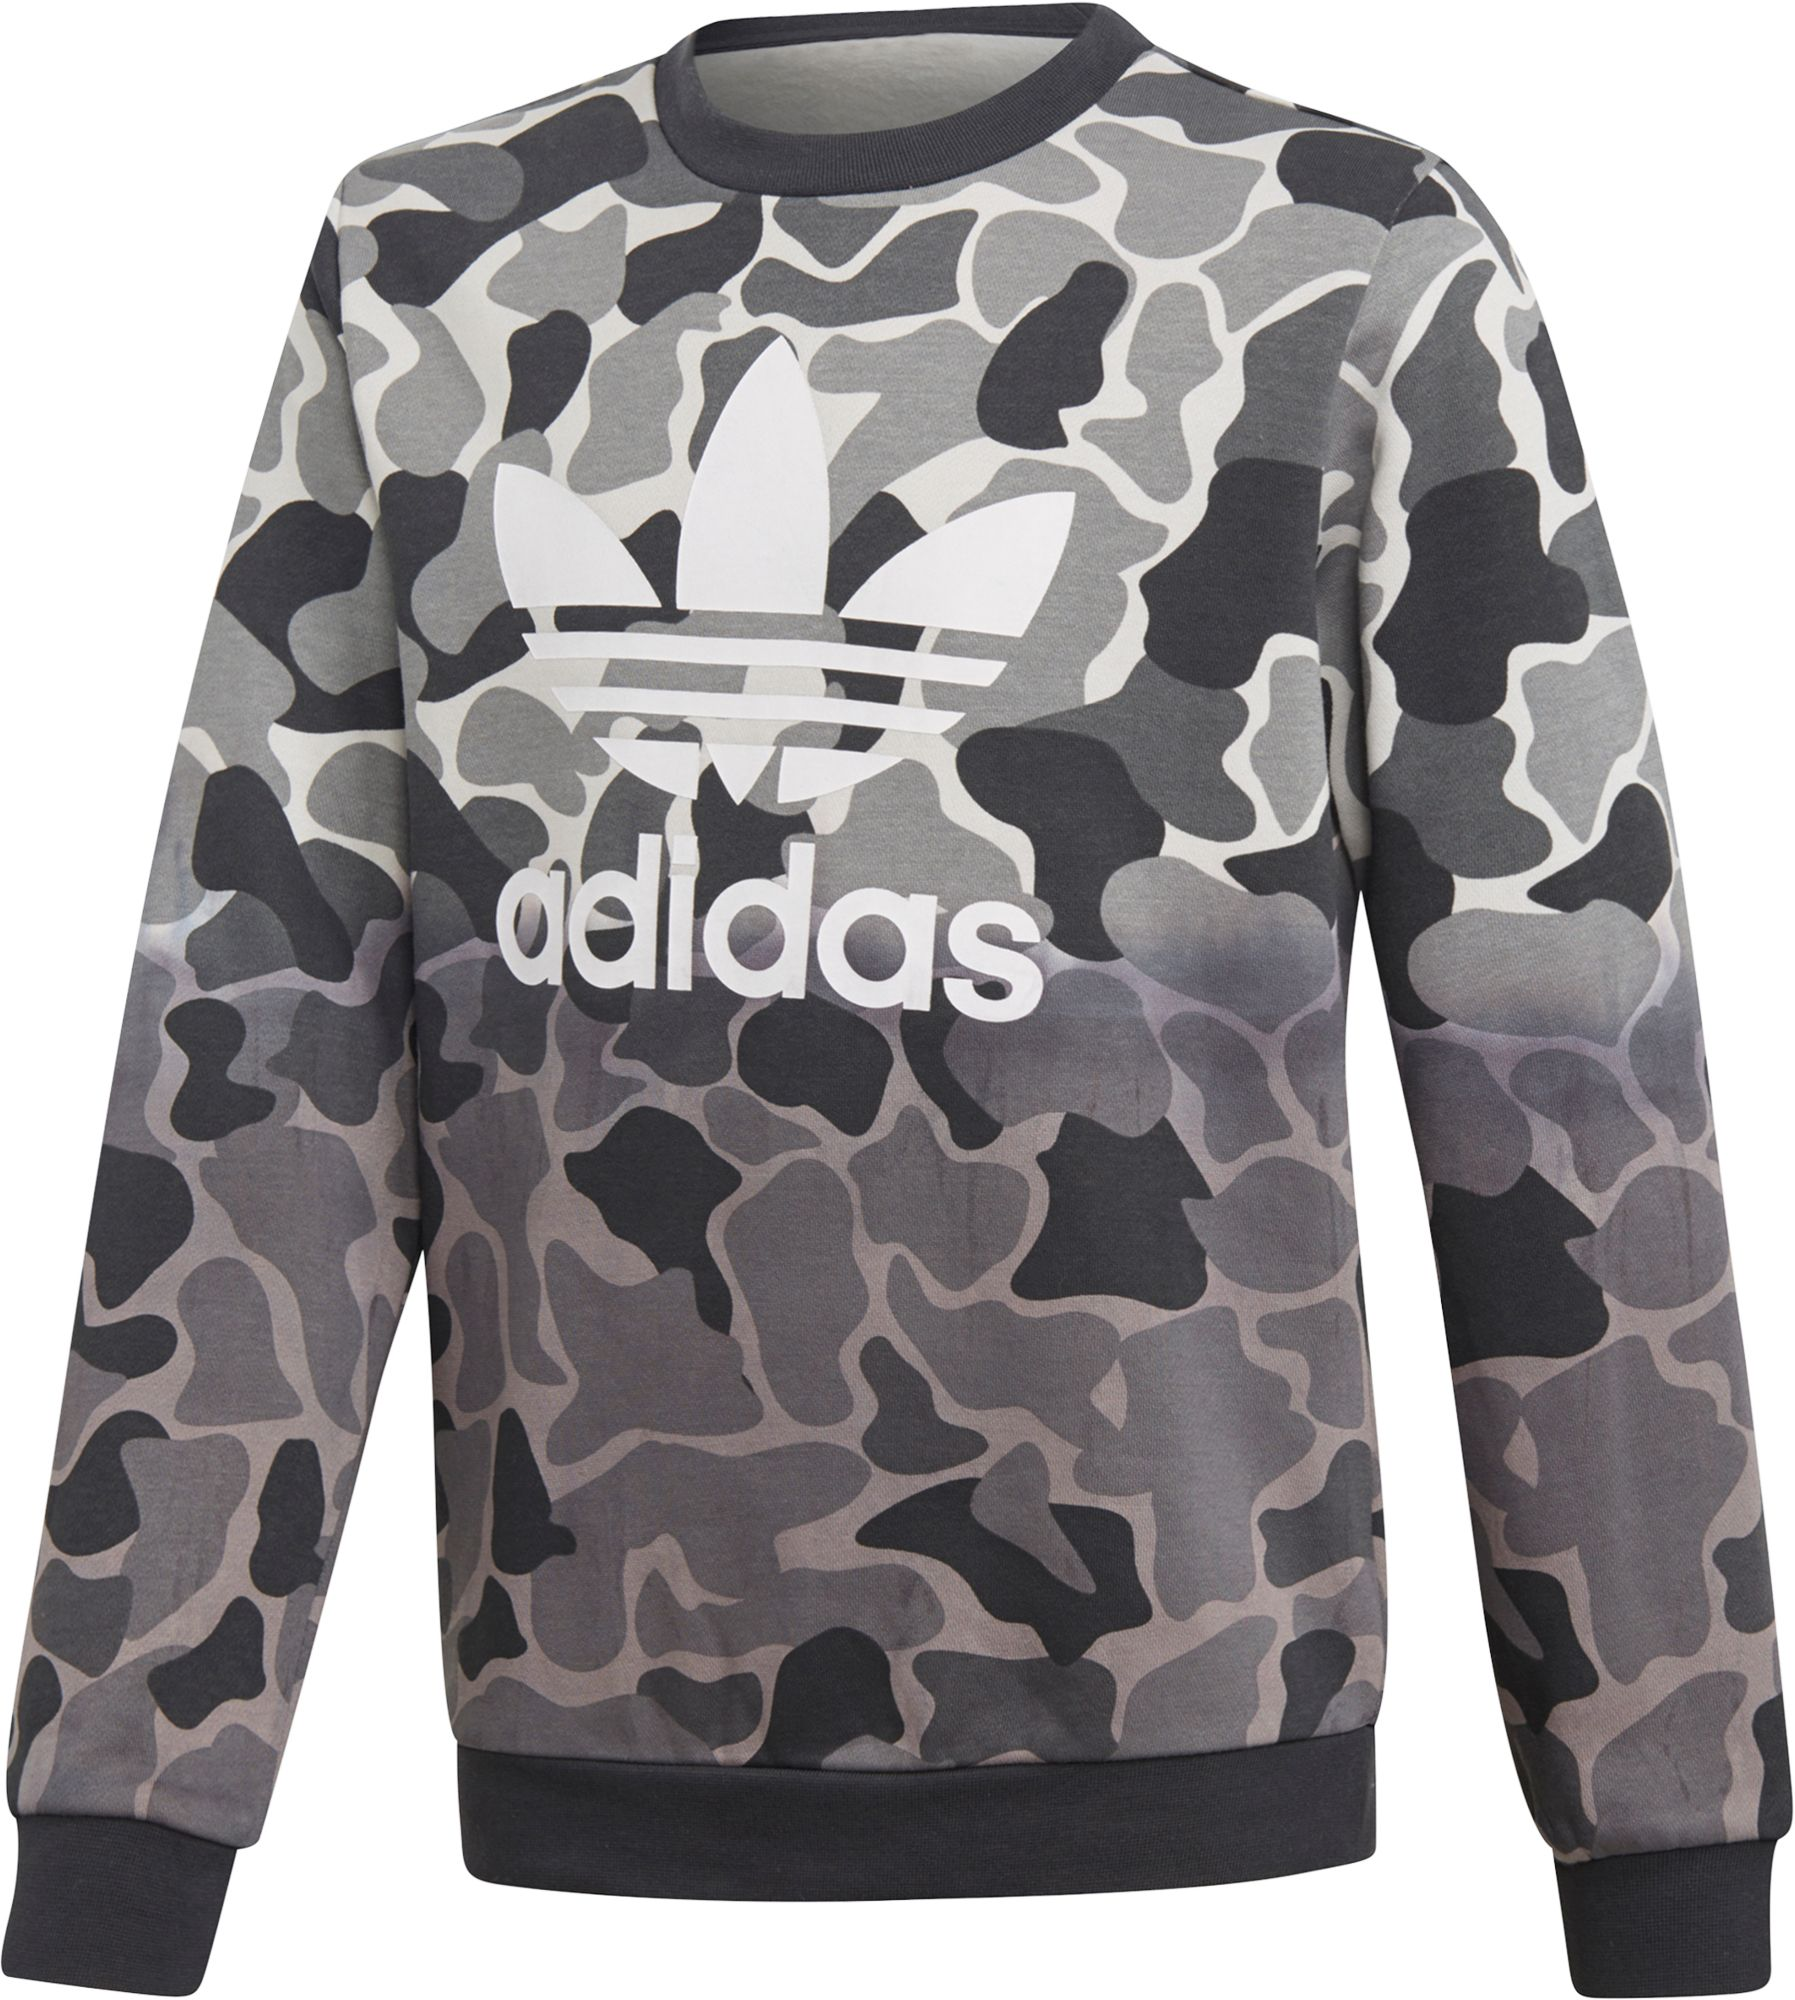 adidas Originals Boys' Camo Trefoil Crew Sweatshirt, Size: XS, Green/Black thumbnail